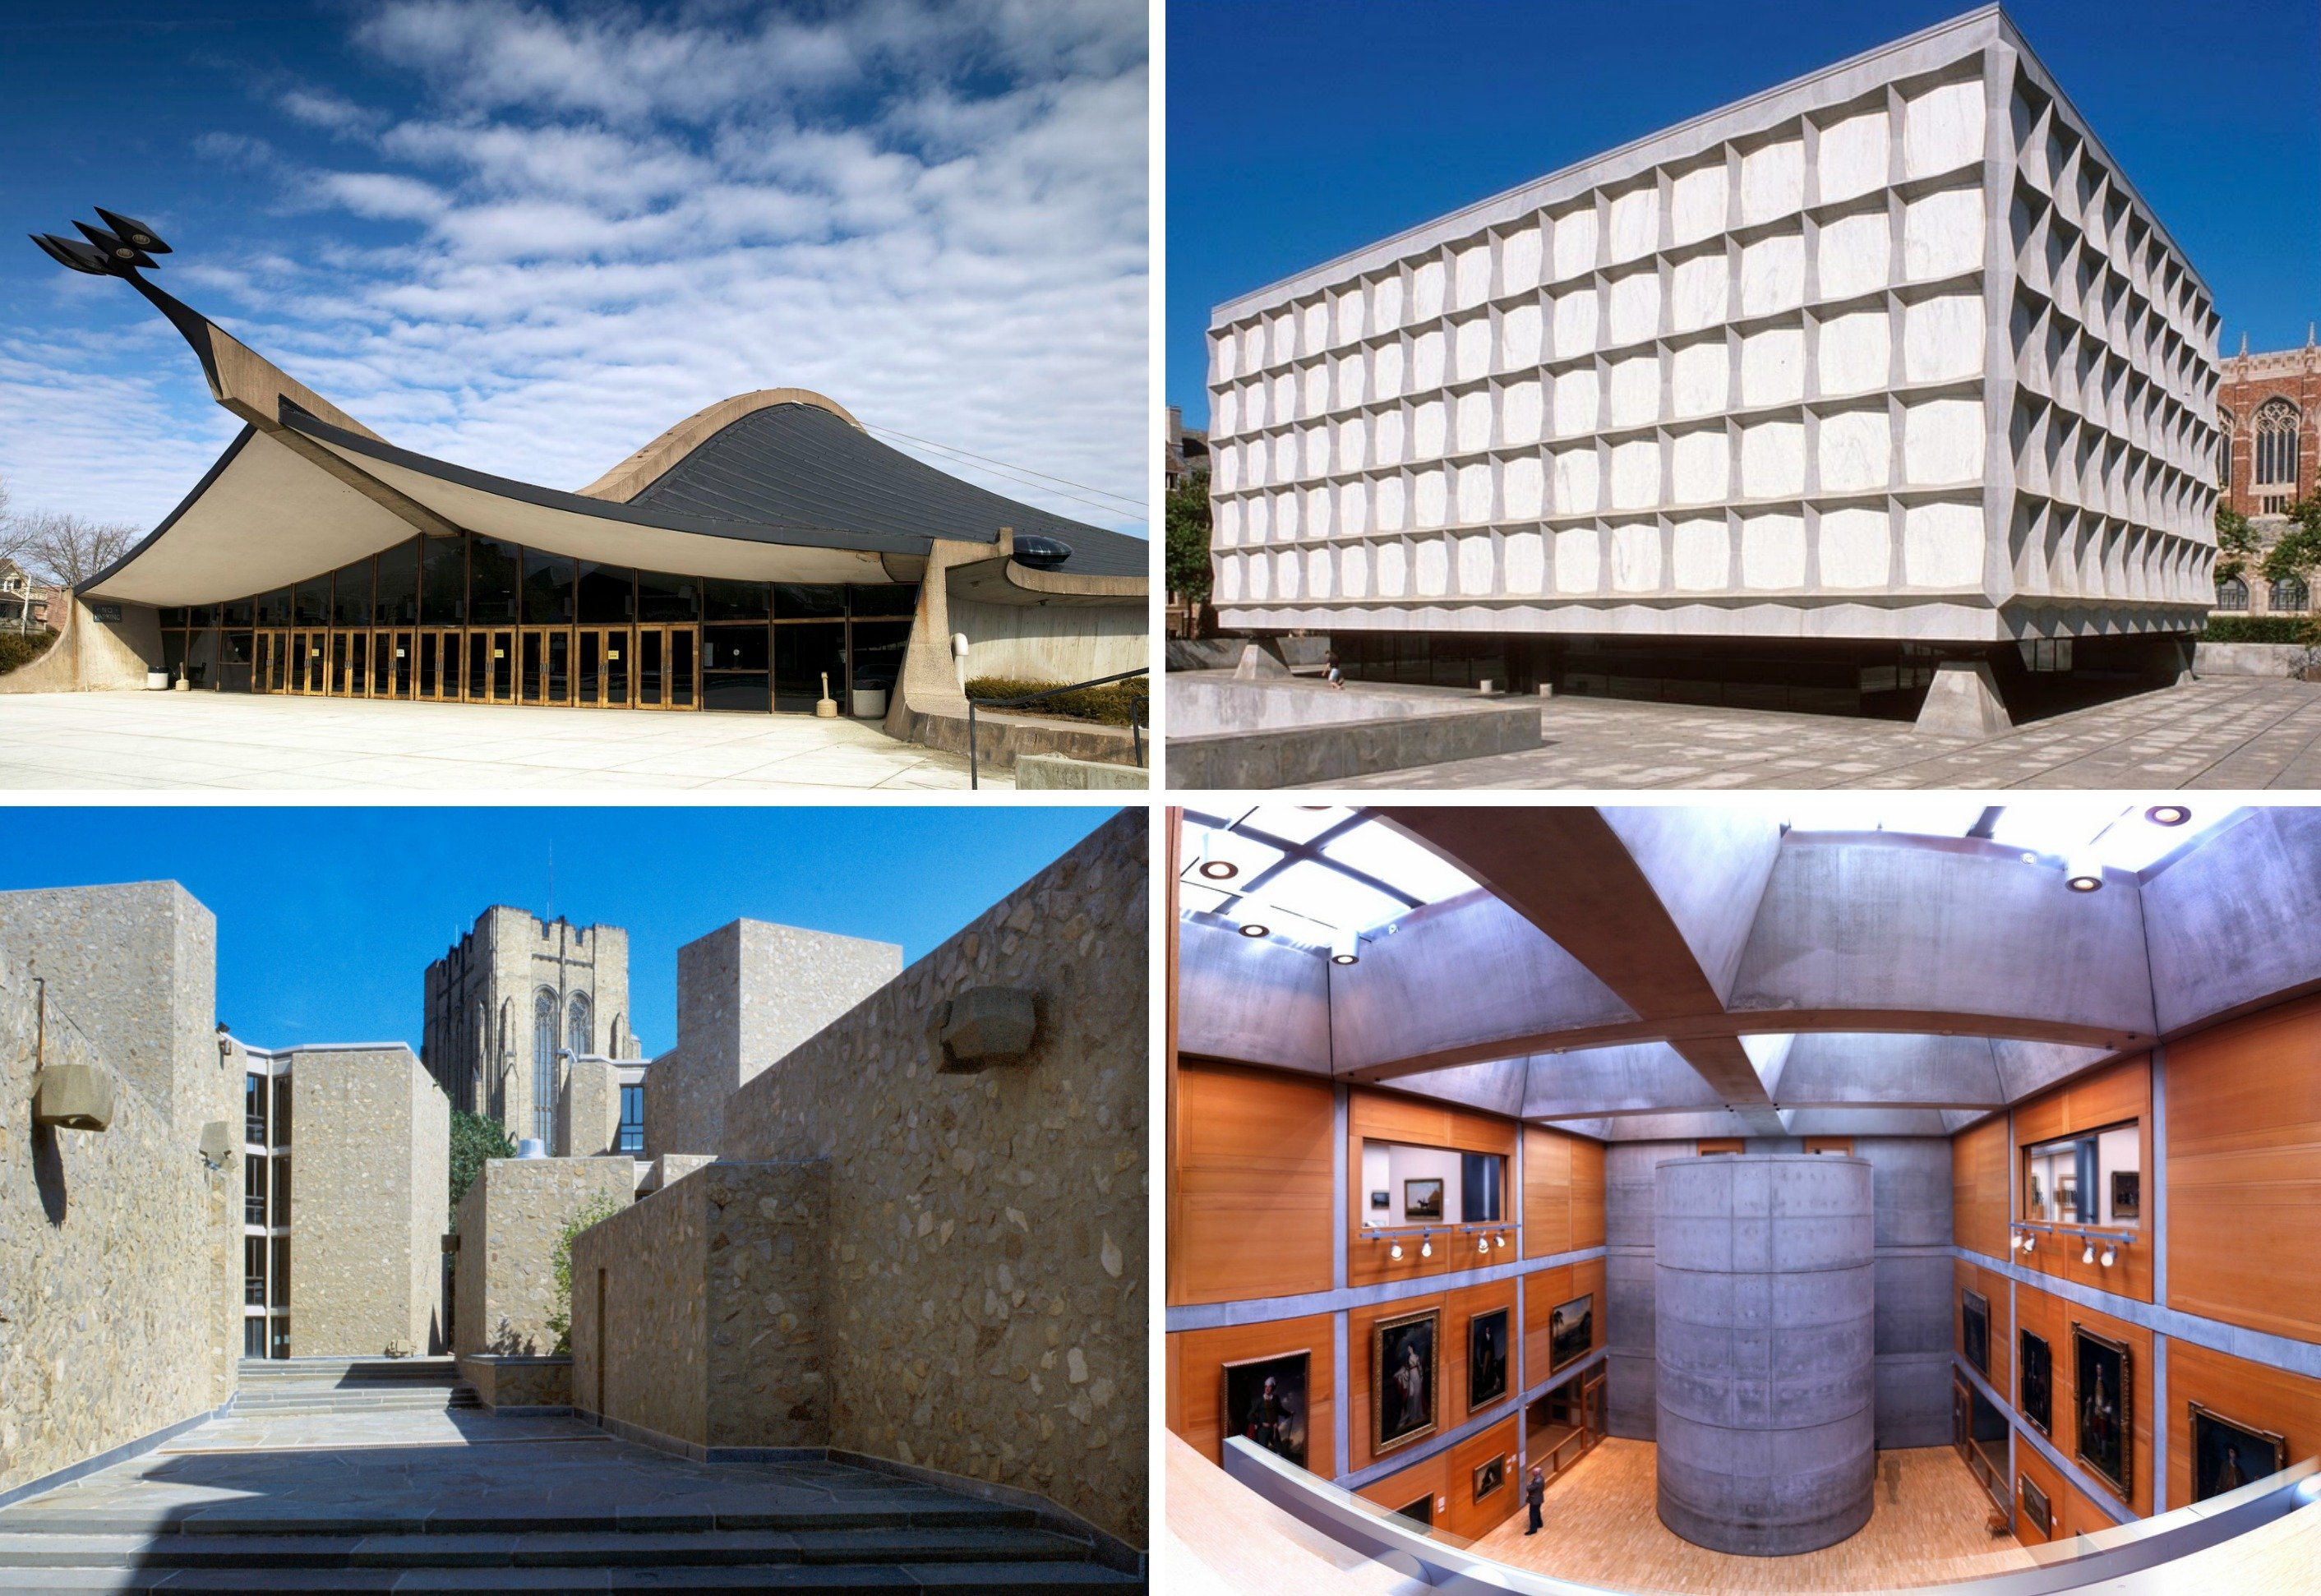 Top 10 best architecture day trips just outside nyc for for Find architecture